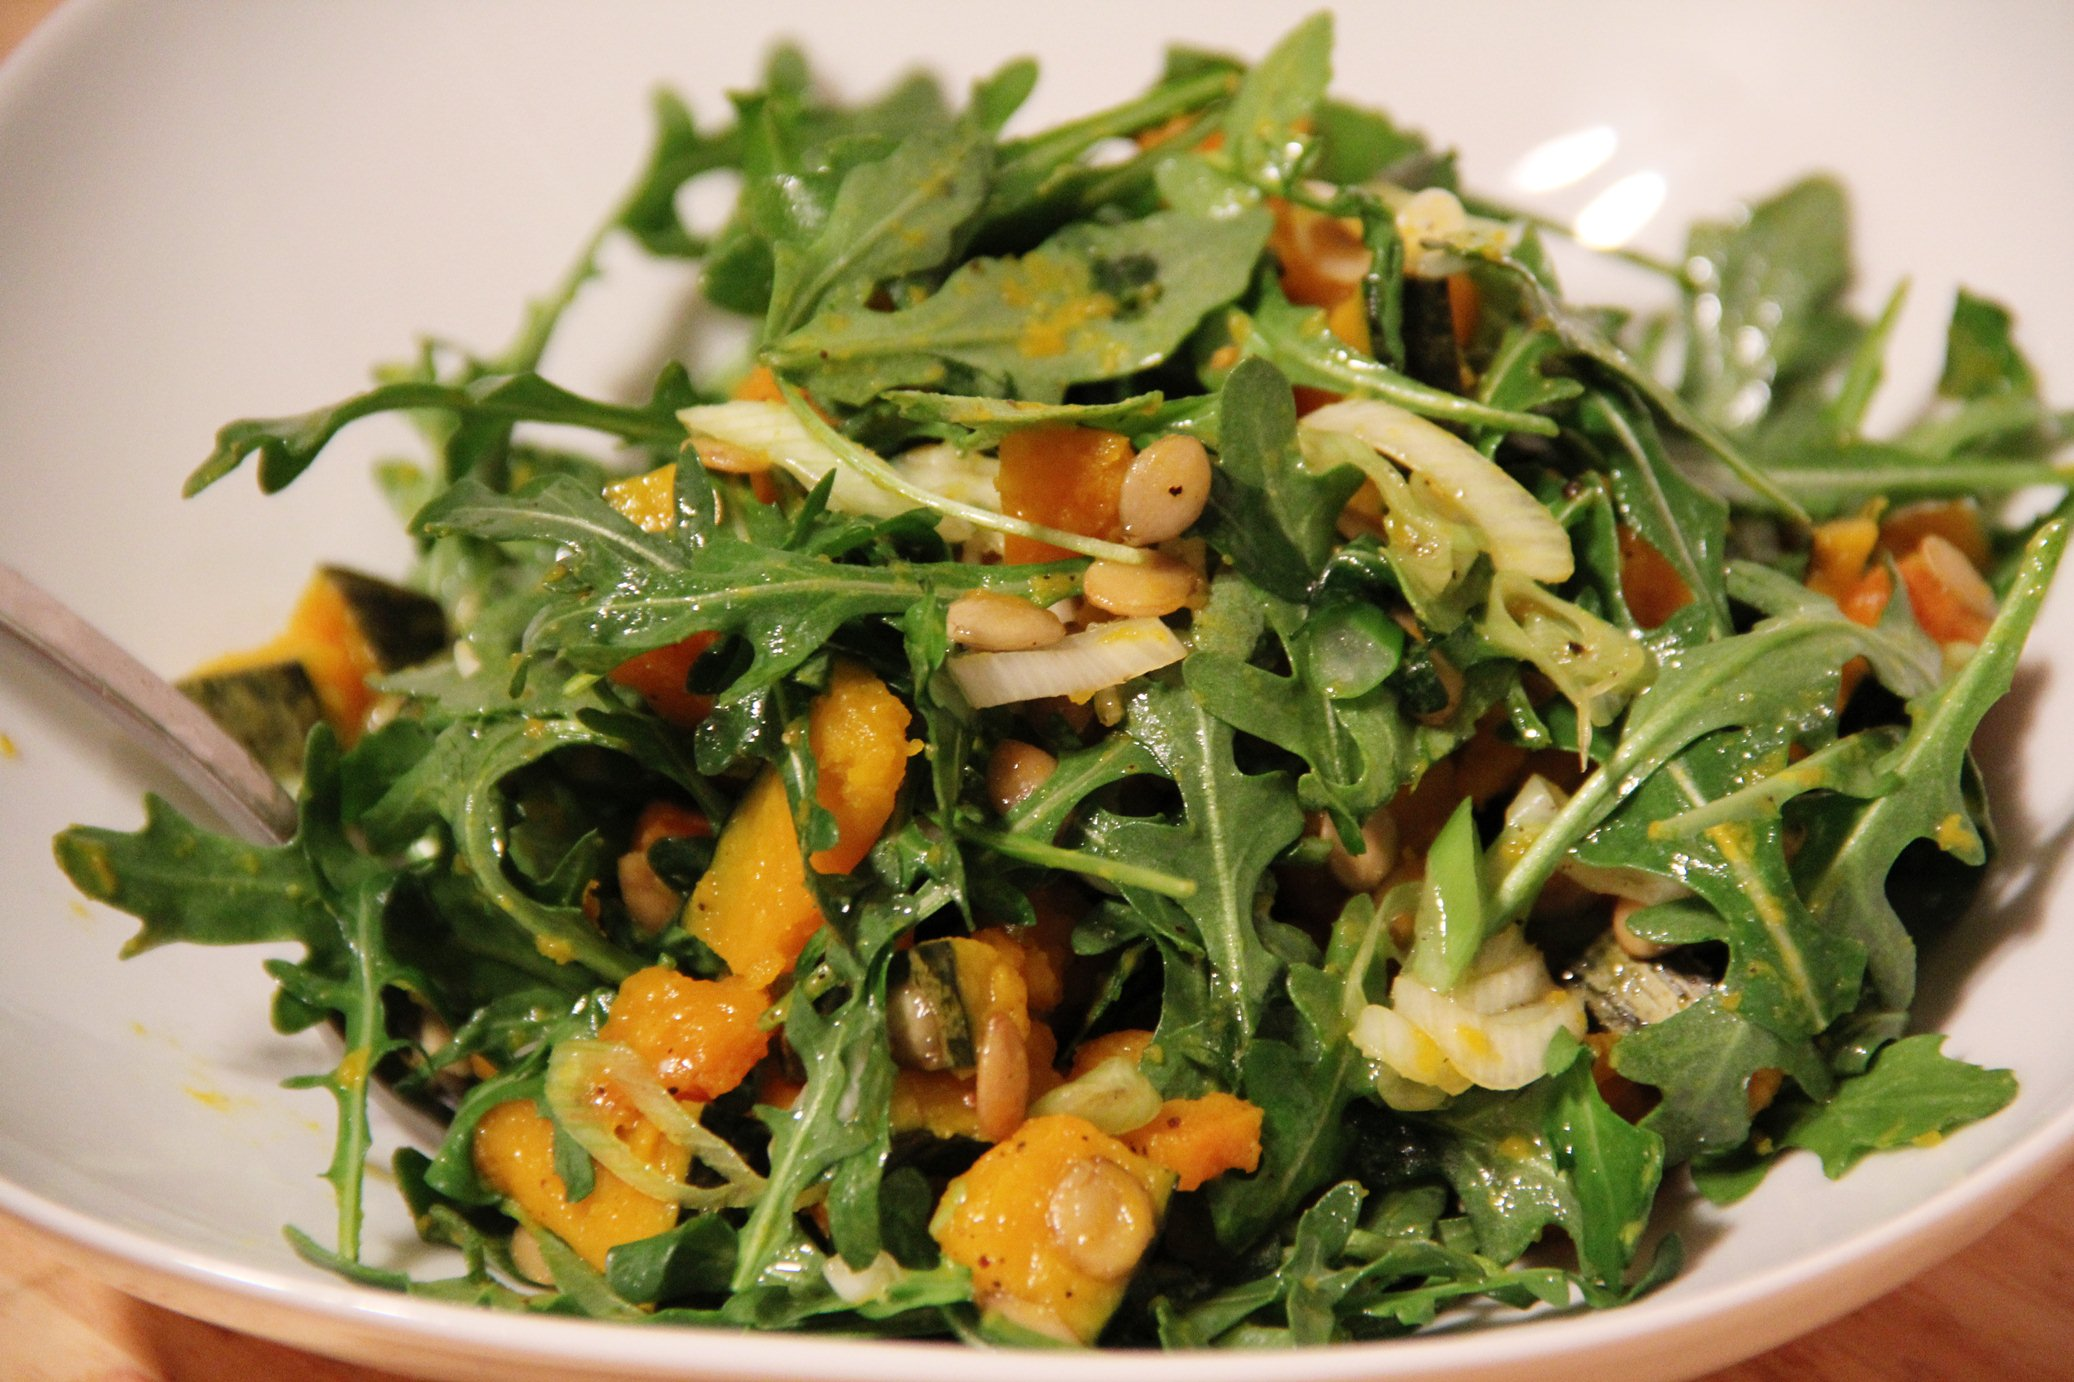 Kabocha Squash and Arugula Salad